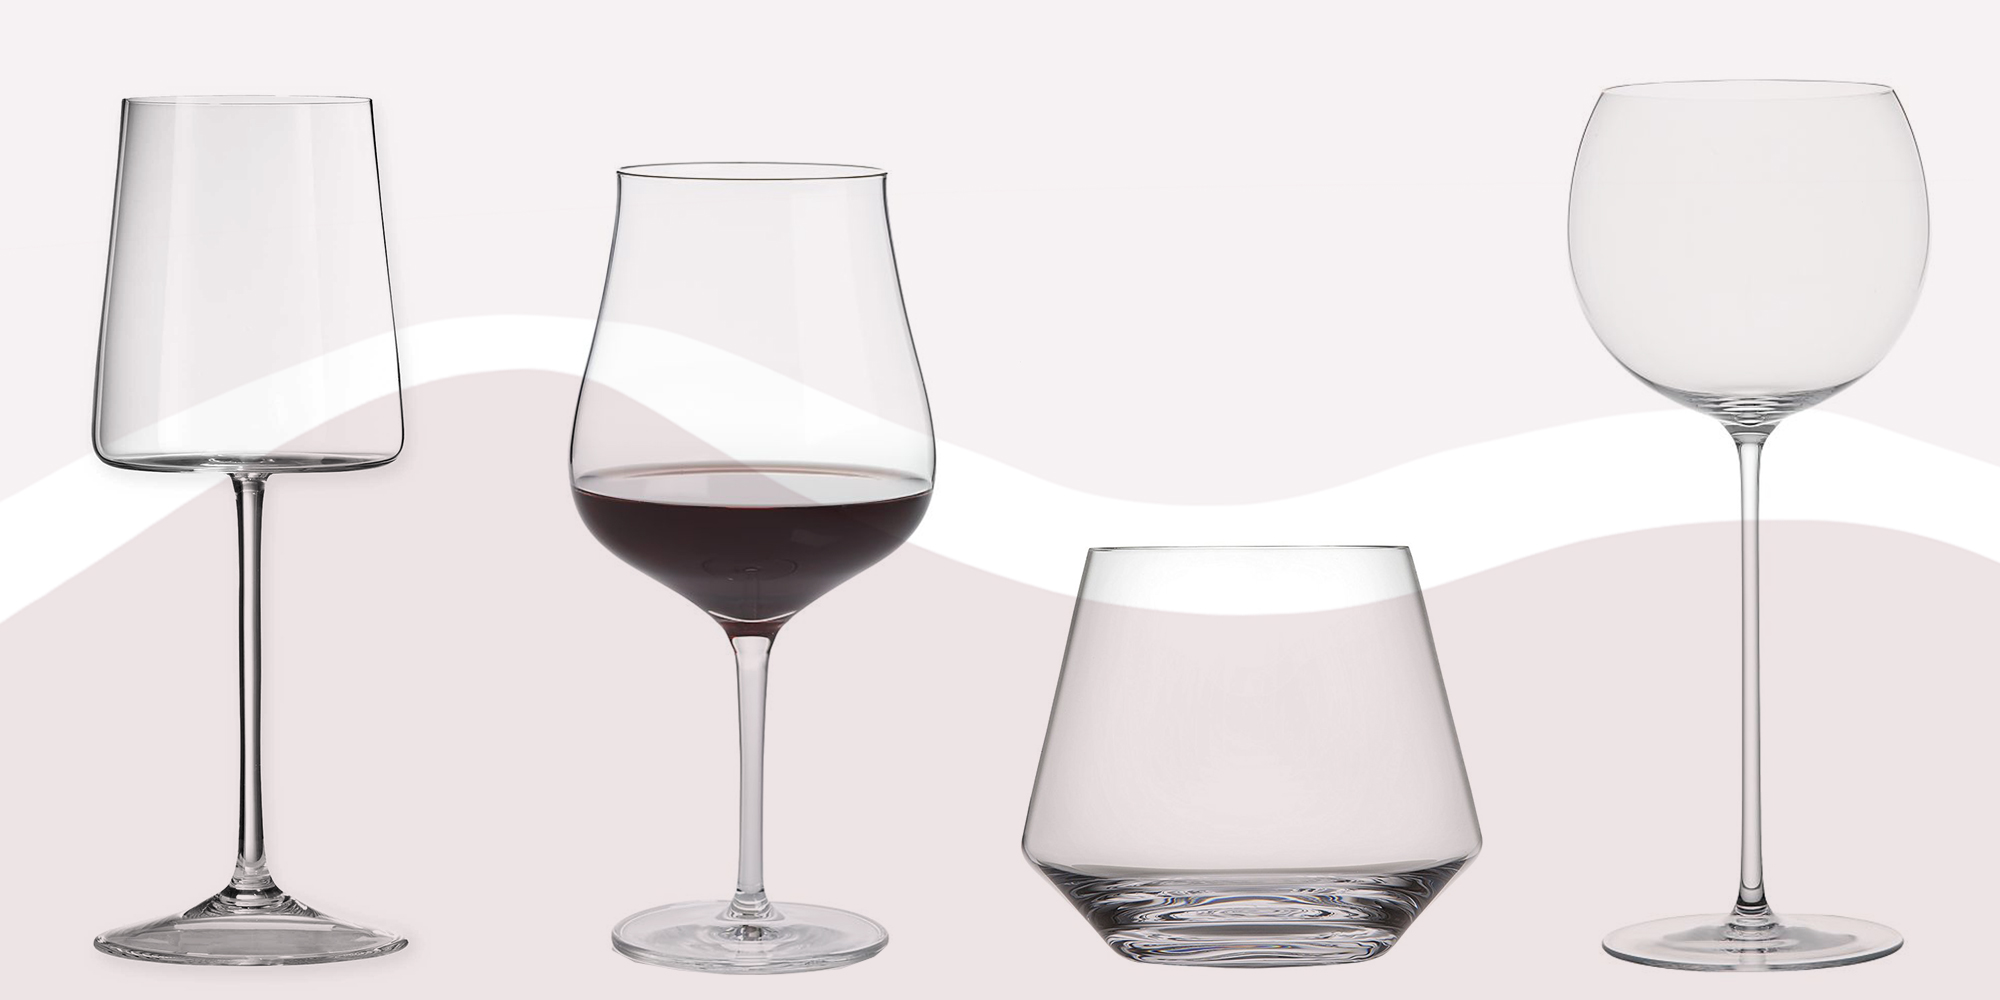 10 best red wine glasses for 2018 large red wine glasses for Large red wine glass